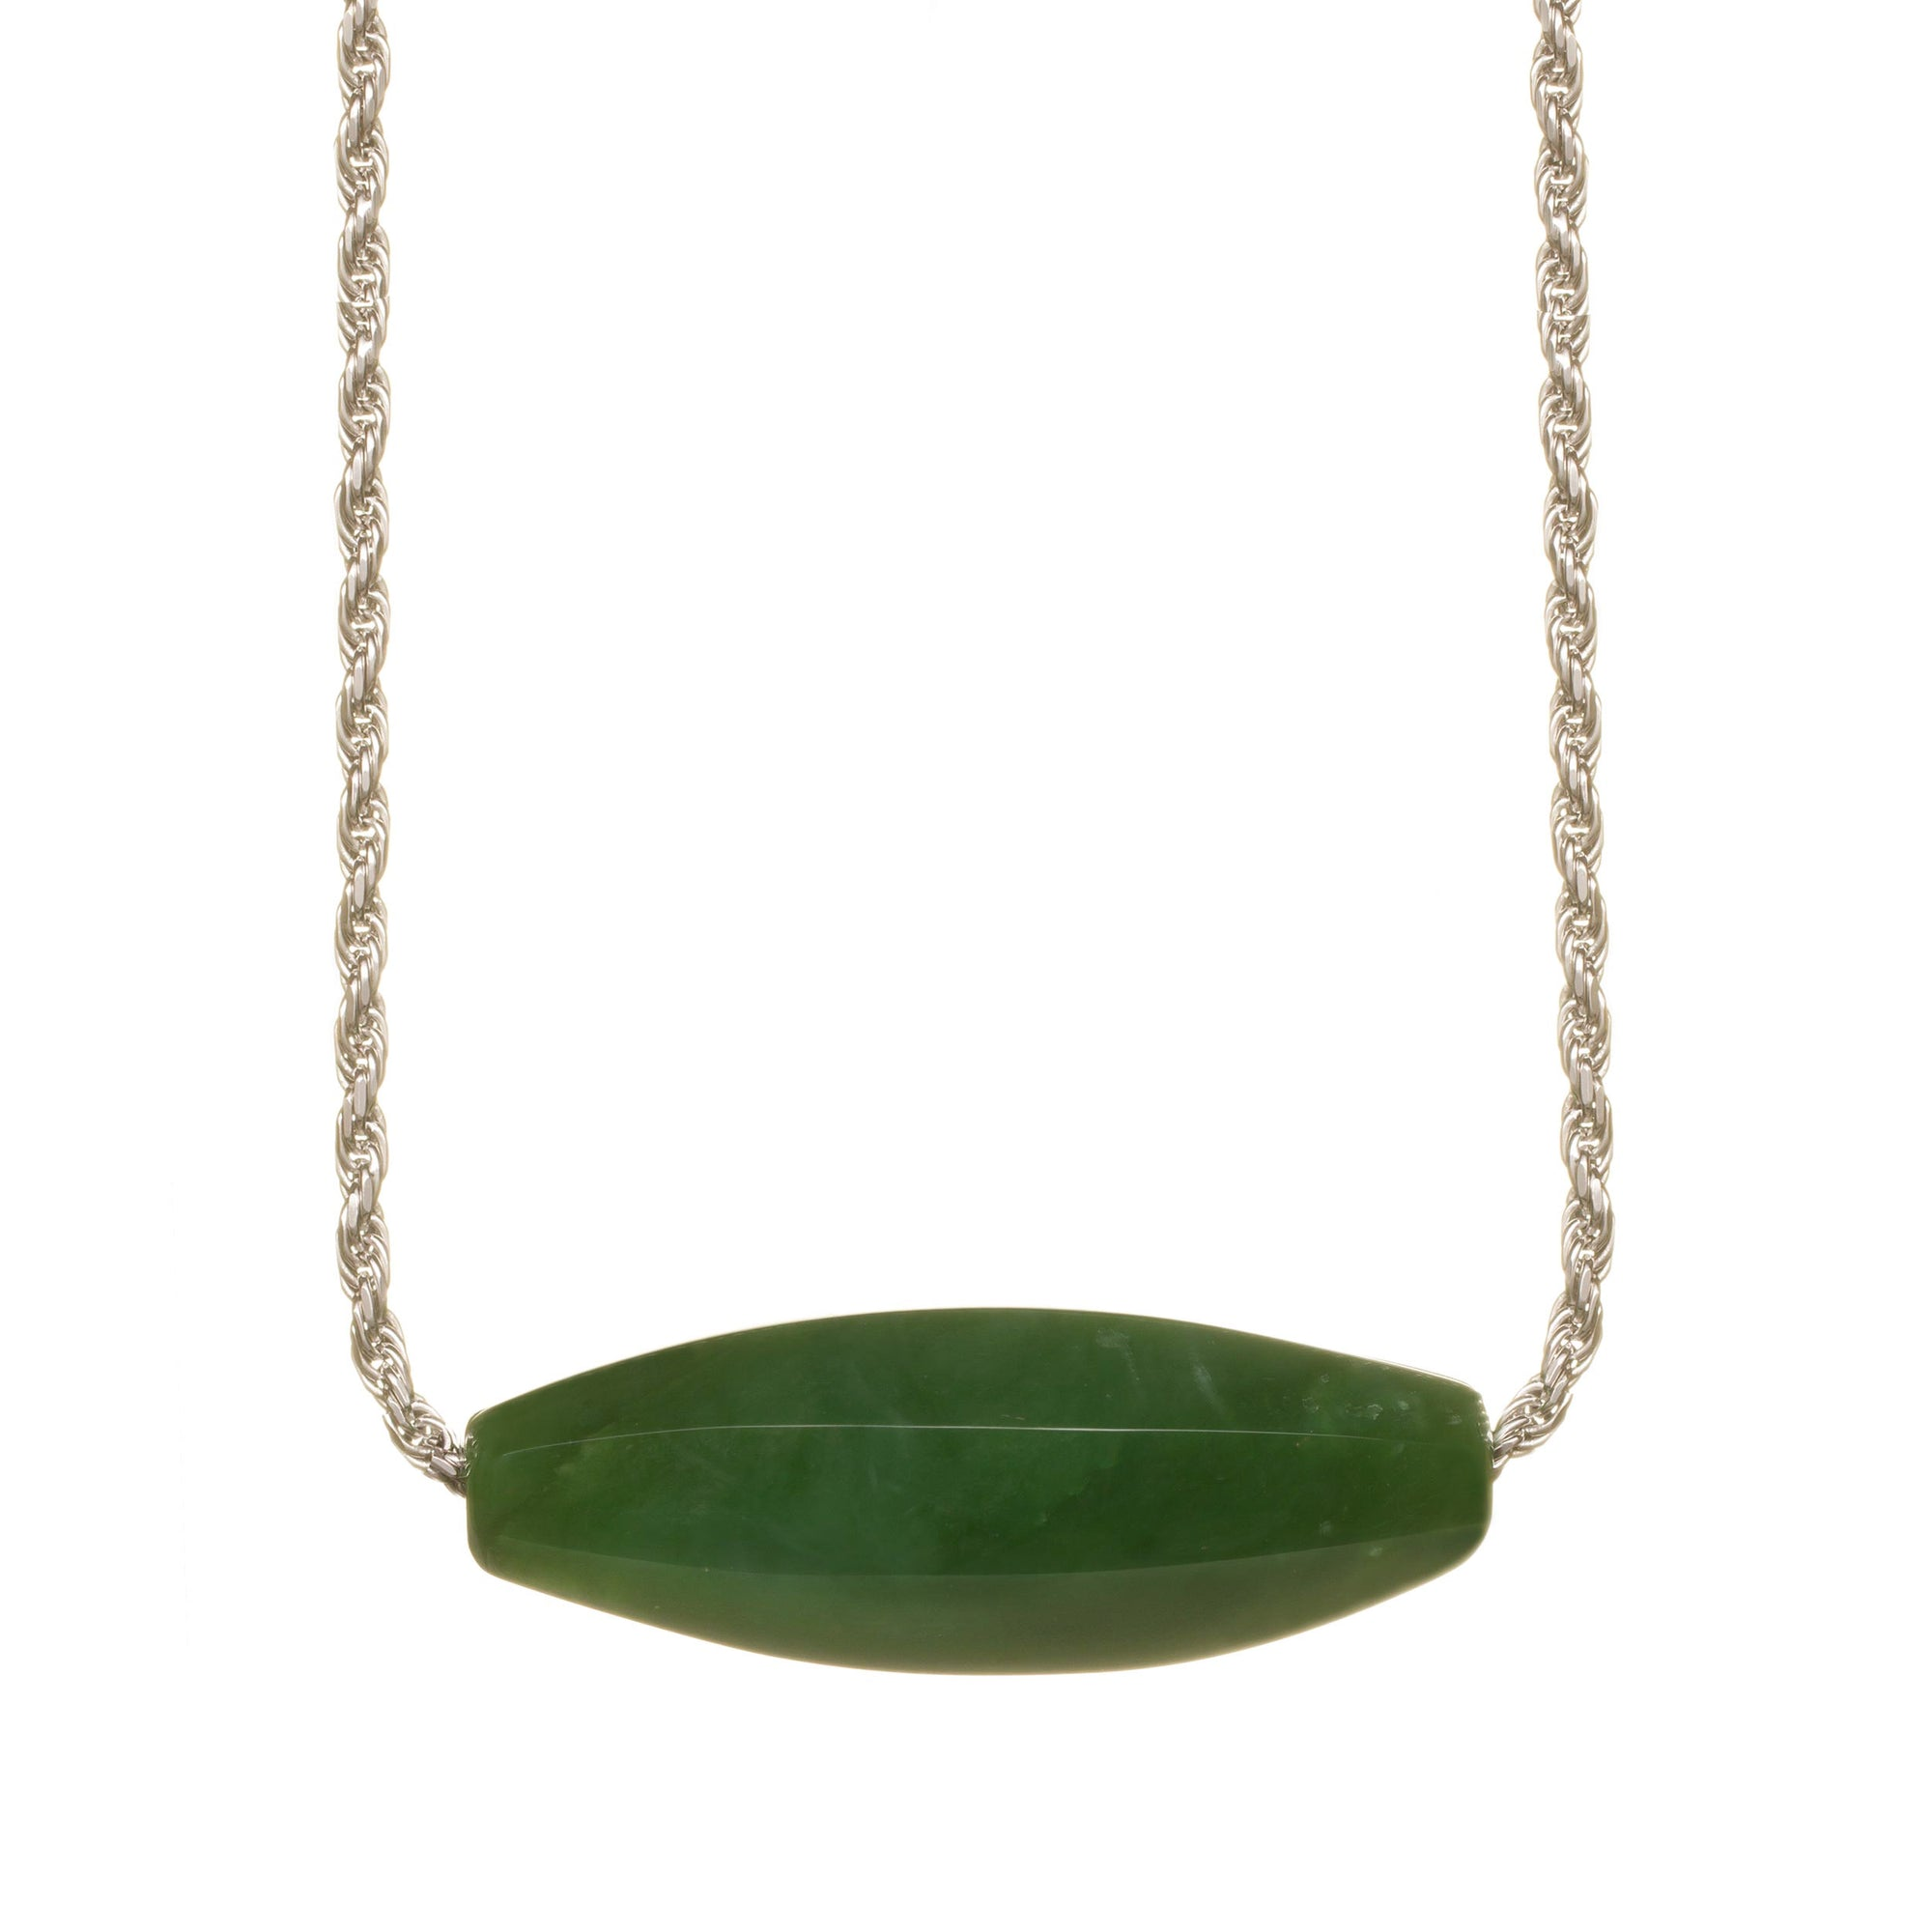 New Zealand Pounamu Faceted Barrel Necklace